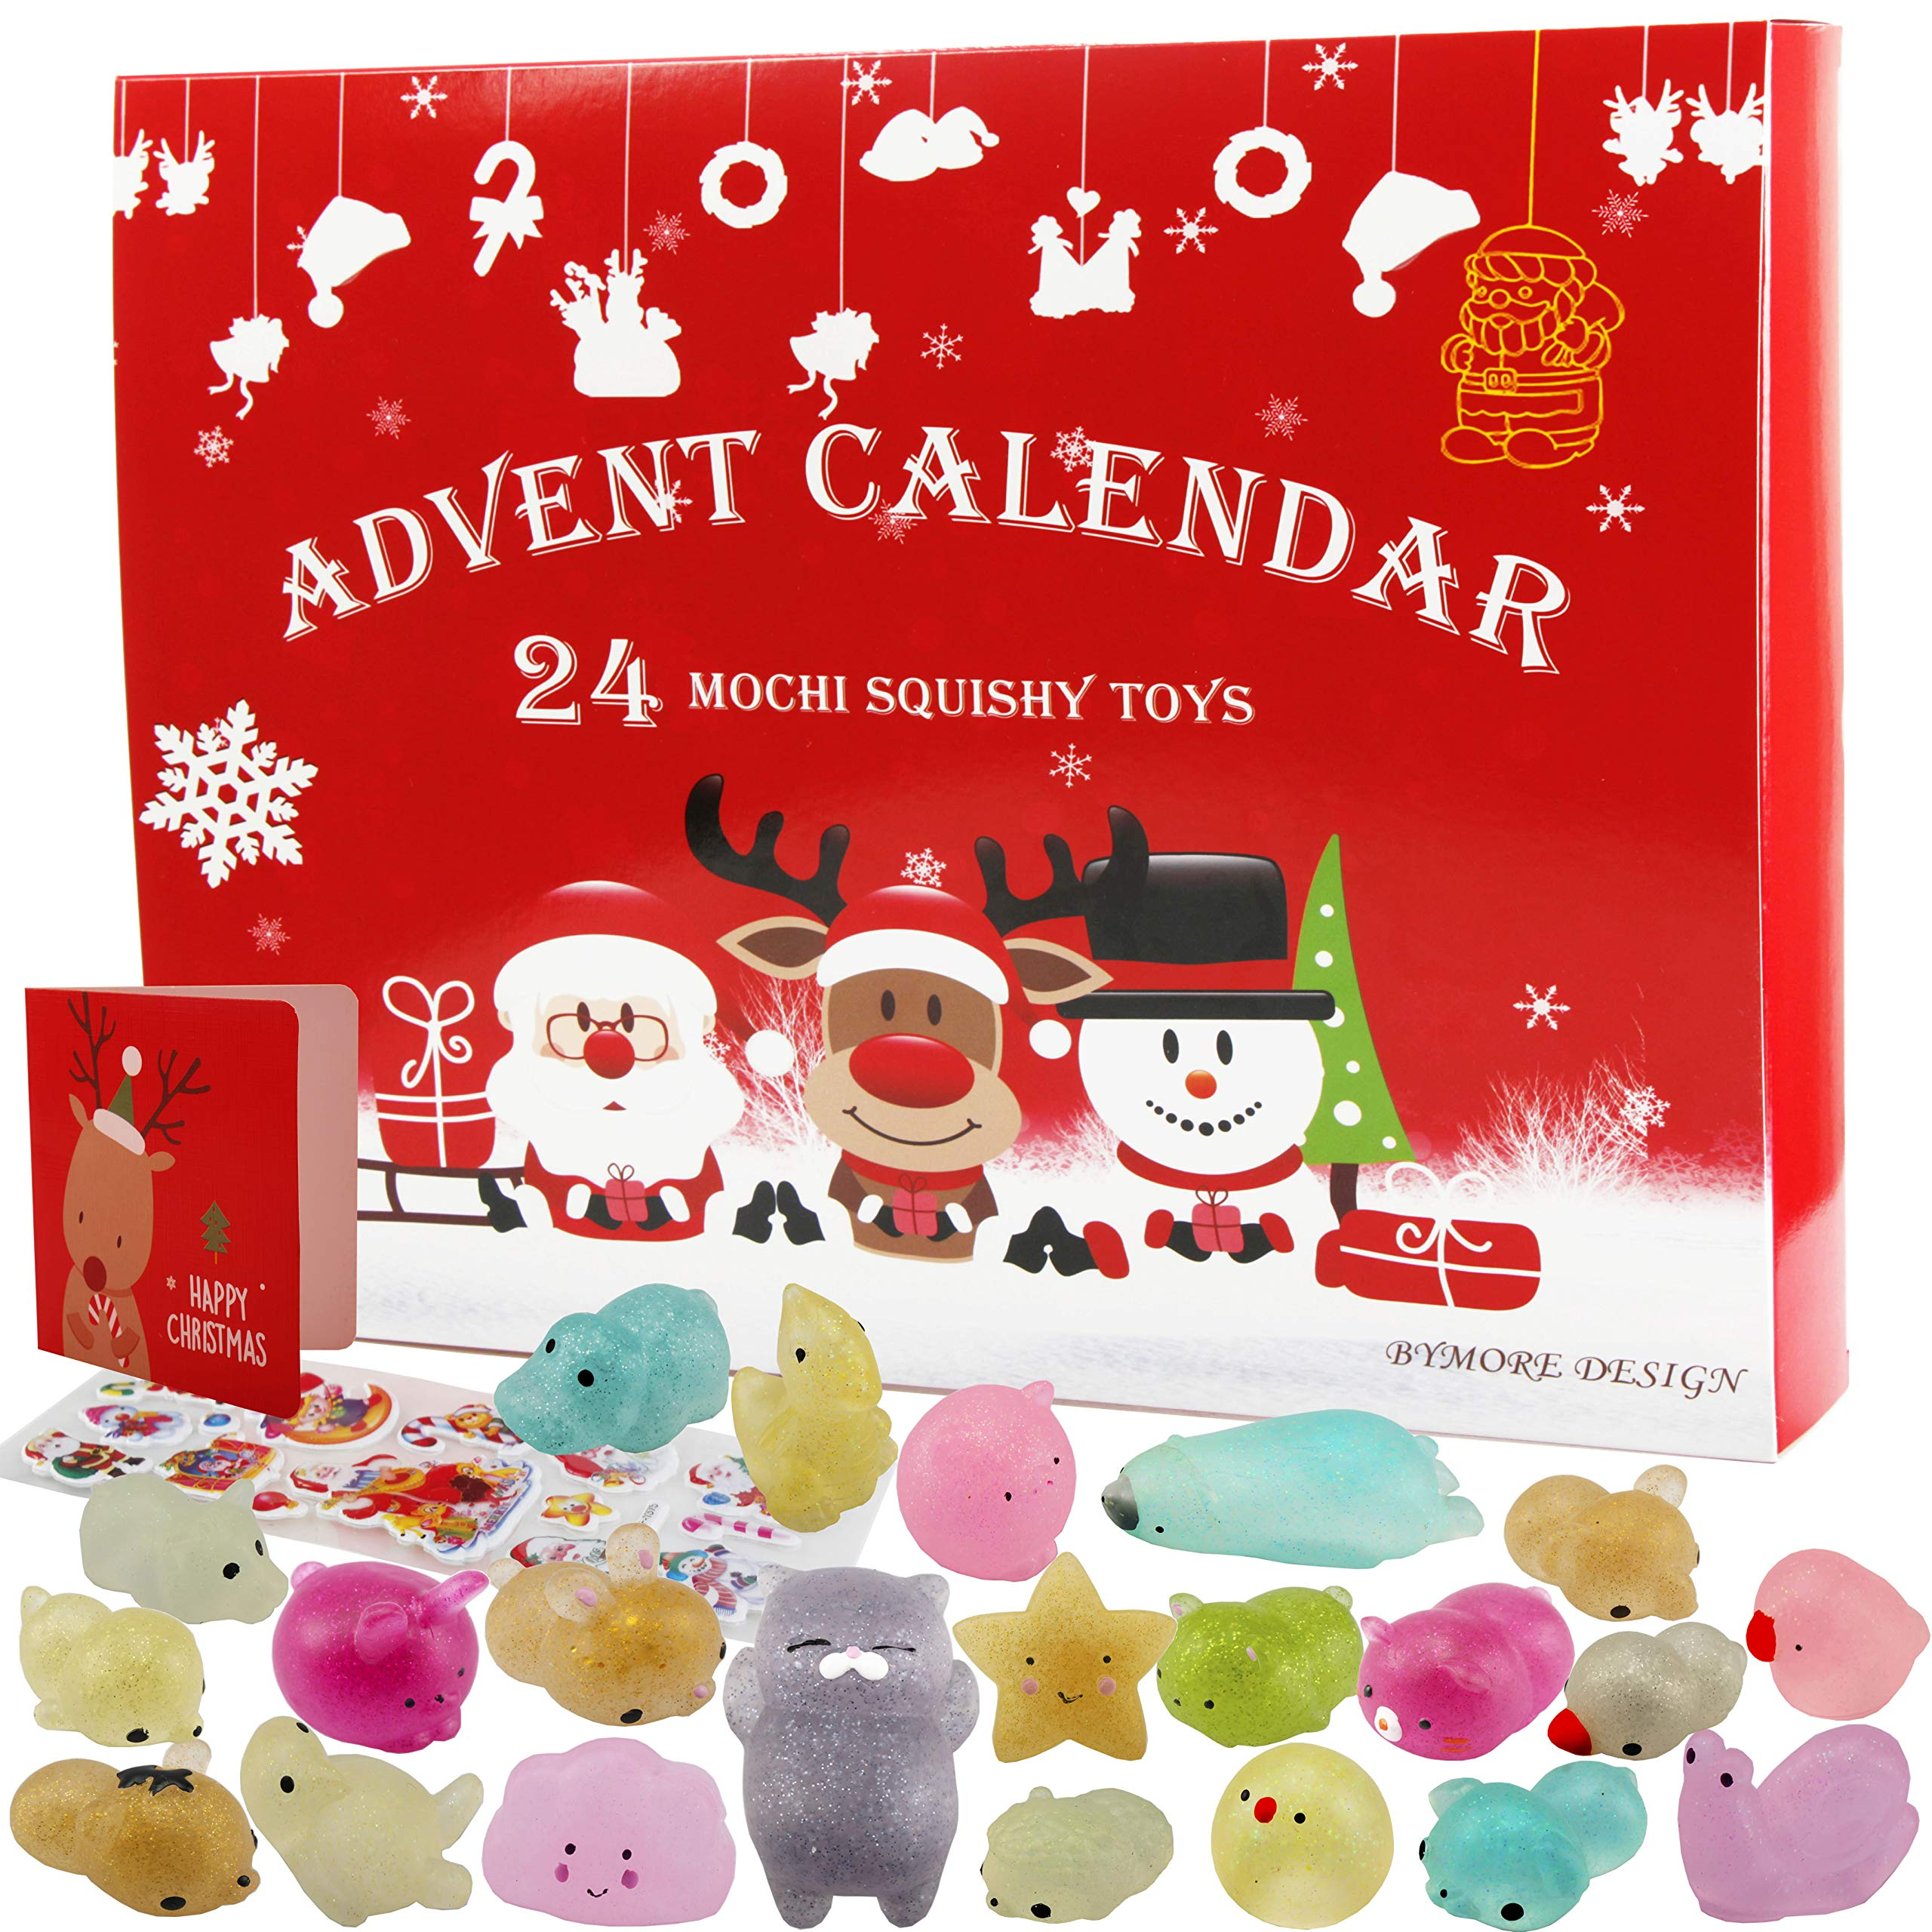 BYMORE 24 Pack Glitter Mochi Squishies Animals Advent Calender Mini Toys Stress Relief Squishies for Kids Adults 2019 Christmas Countdown Gifts by BYMORE